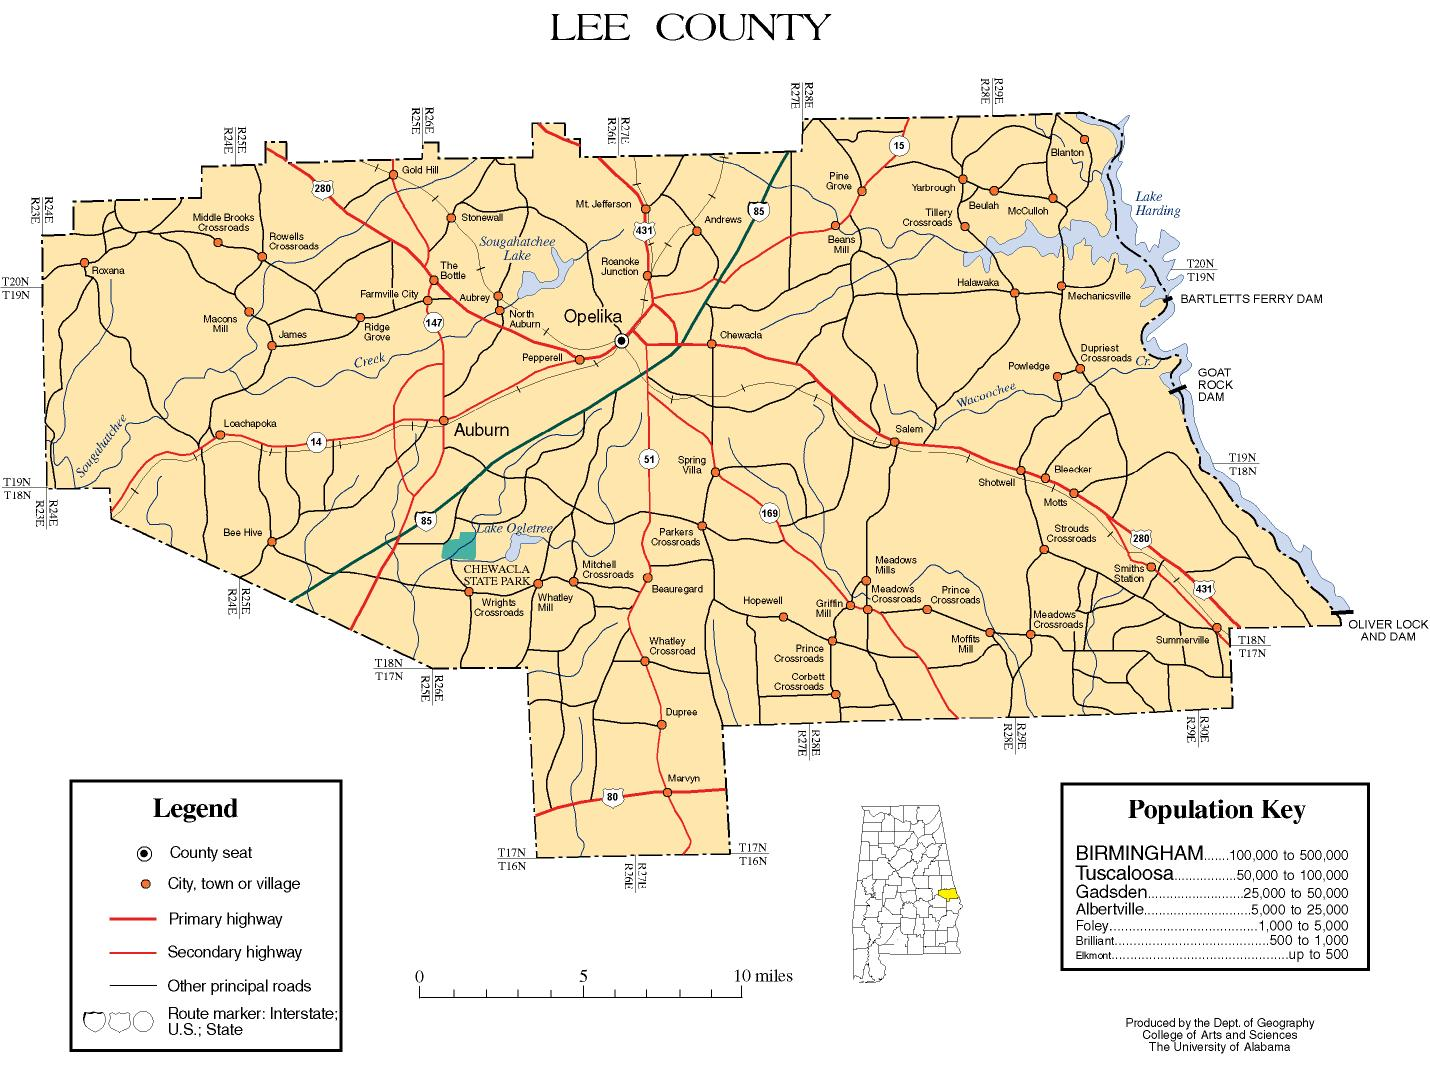 Lee County Maps Lee County, Alabama history, ADAH Lee County Maps